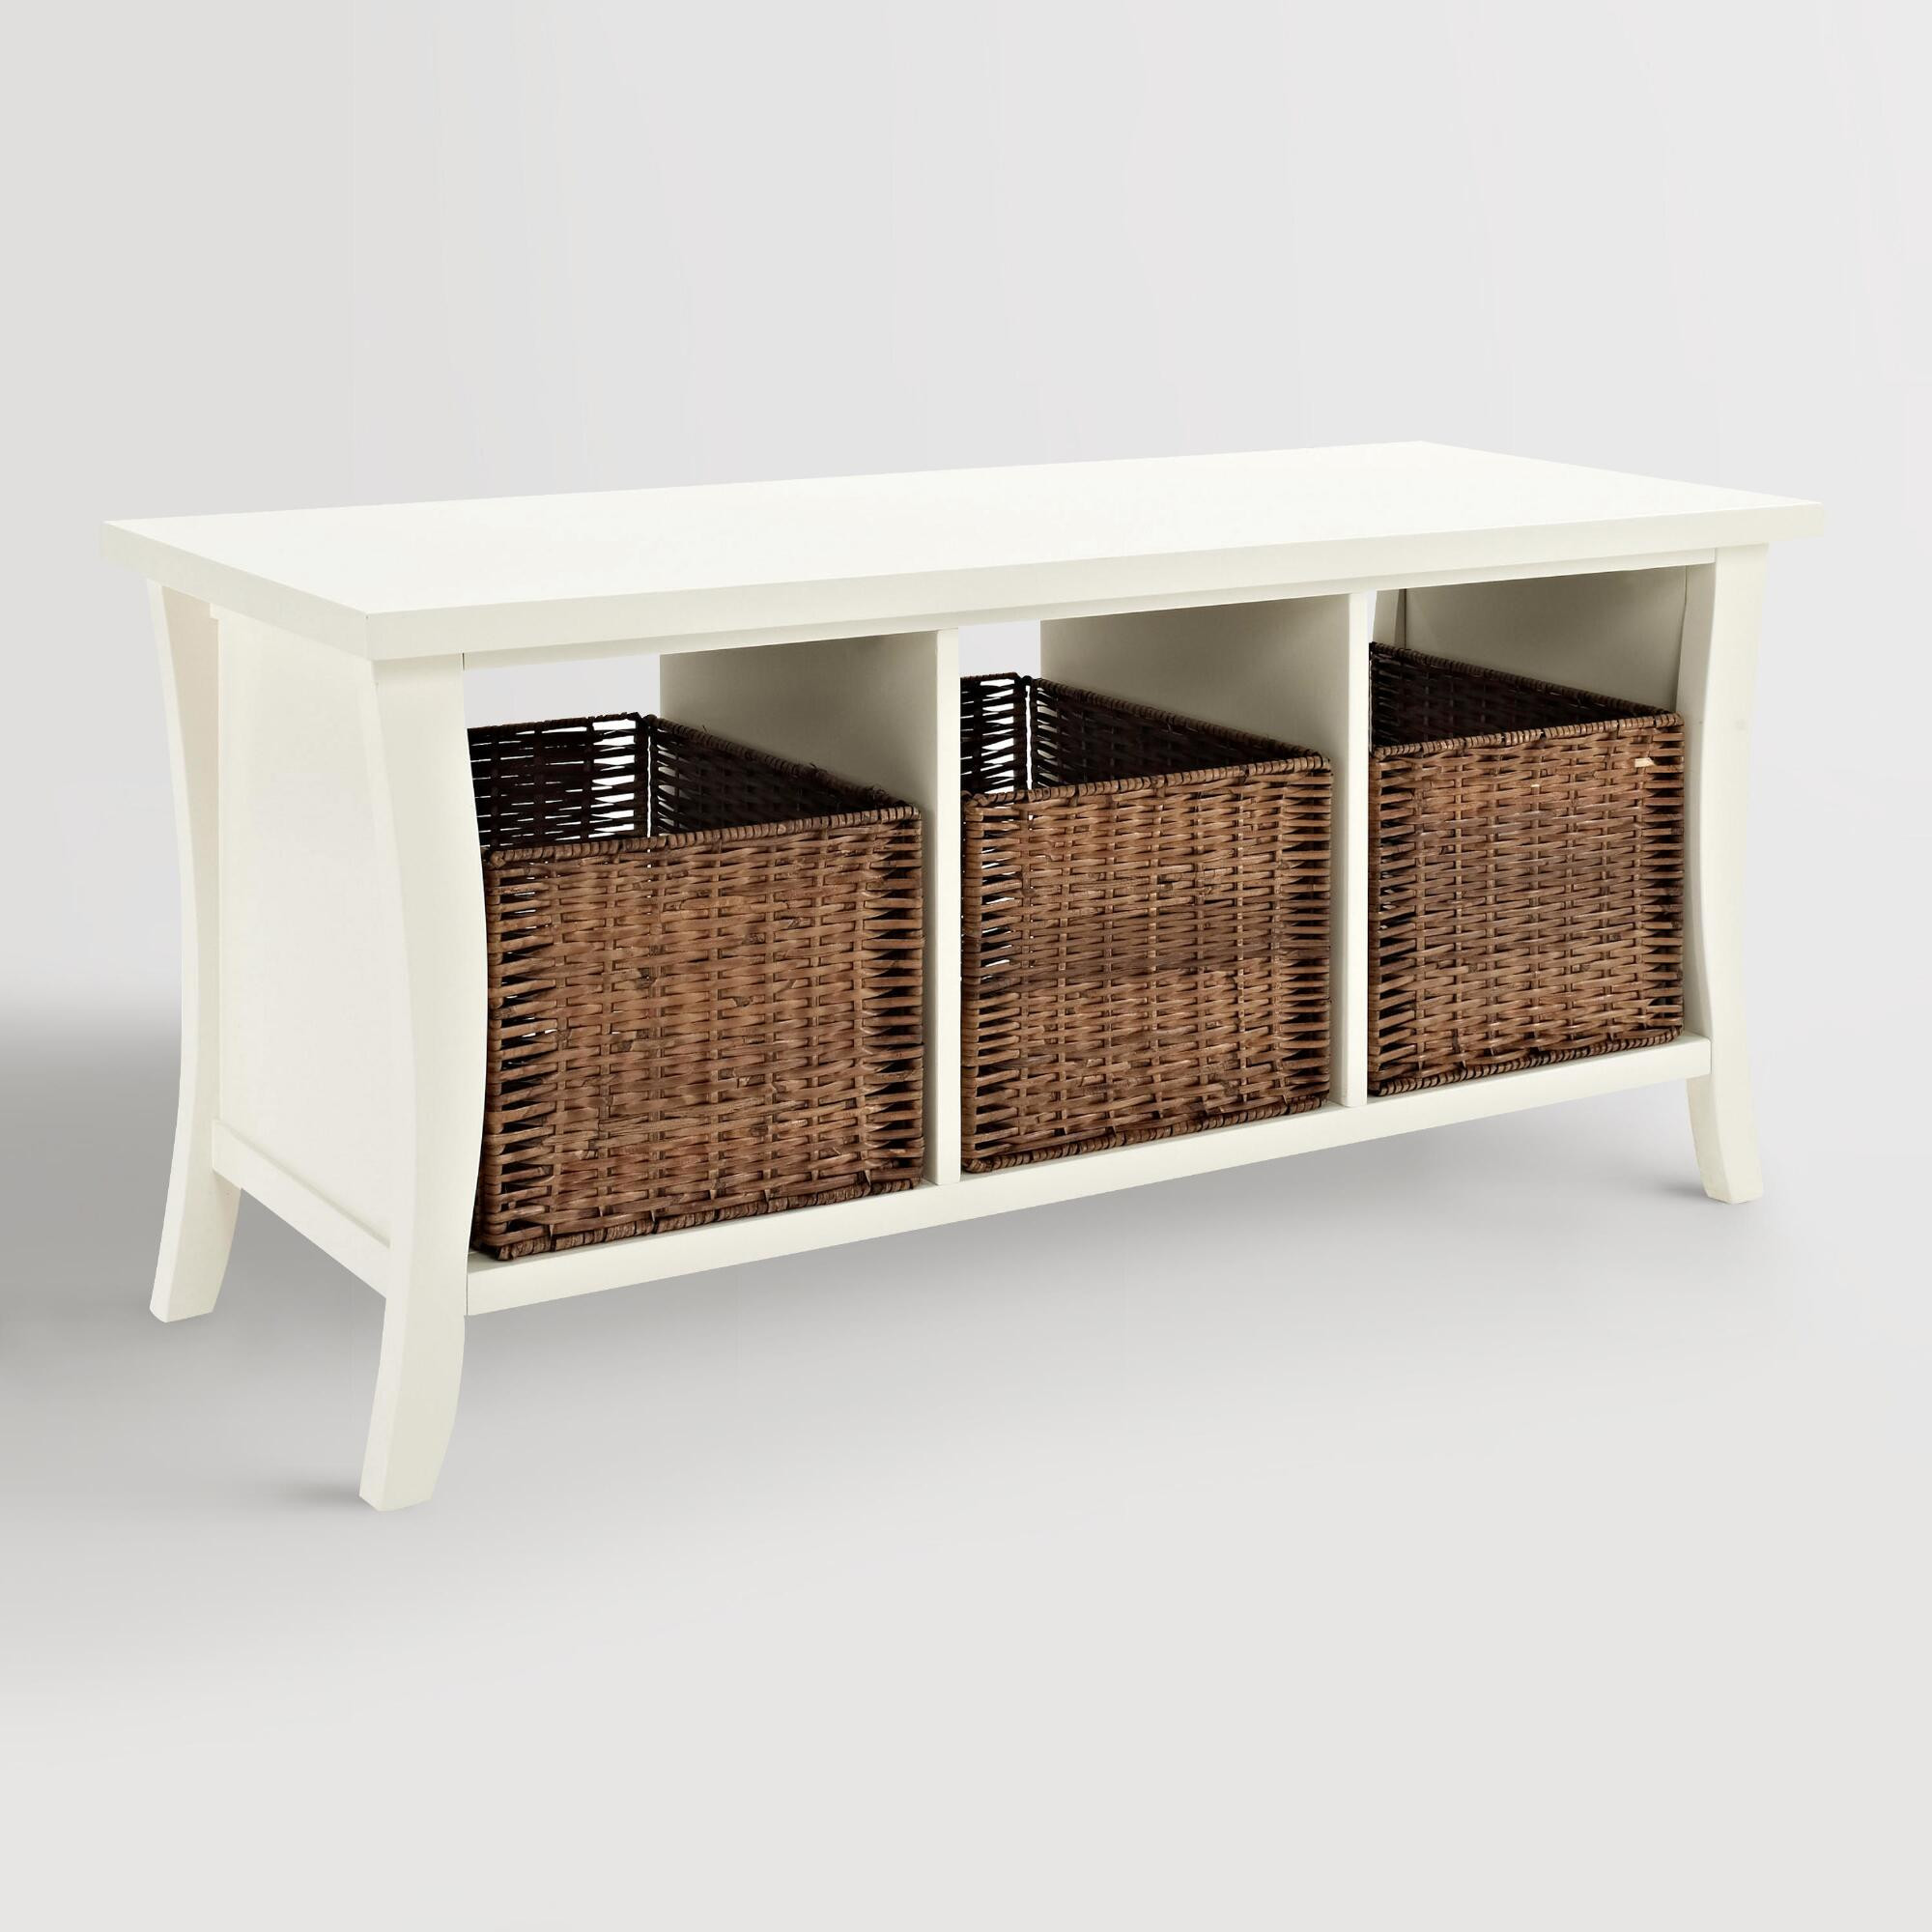 Best ideas about White Entryway Bench . Save or Pin White Wood Cassia Entryway Storage Bench with Baskets Now.